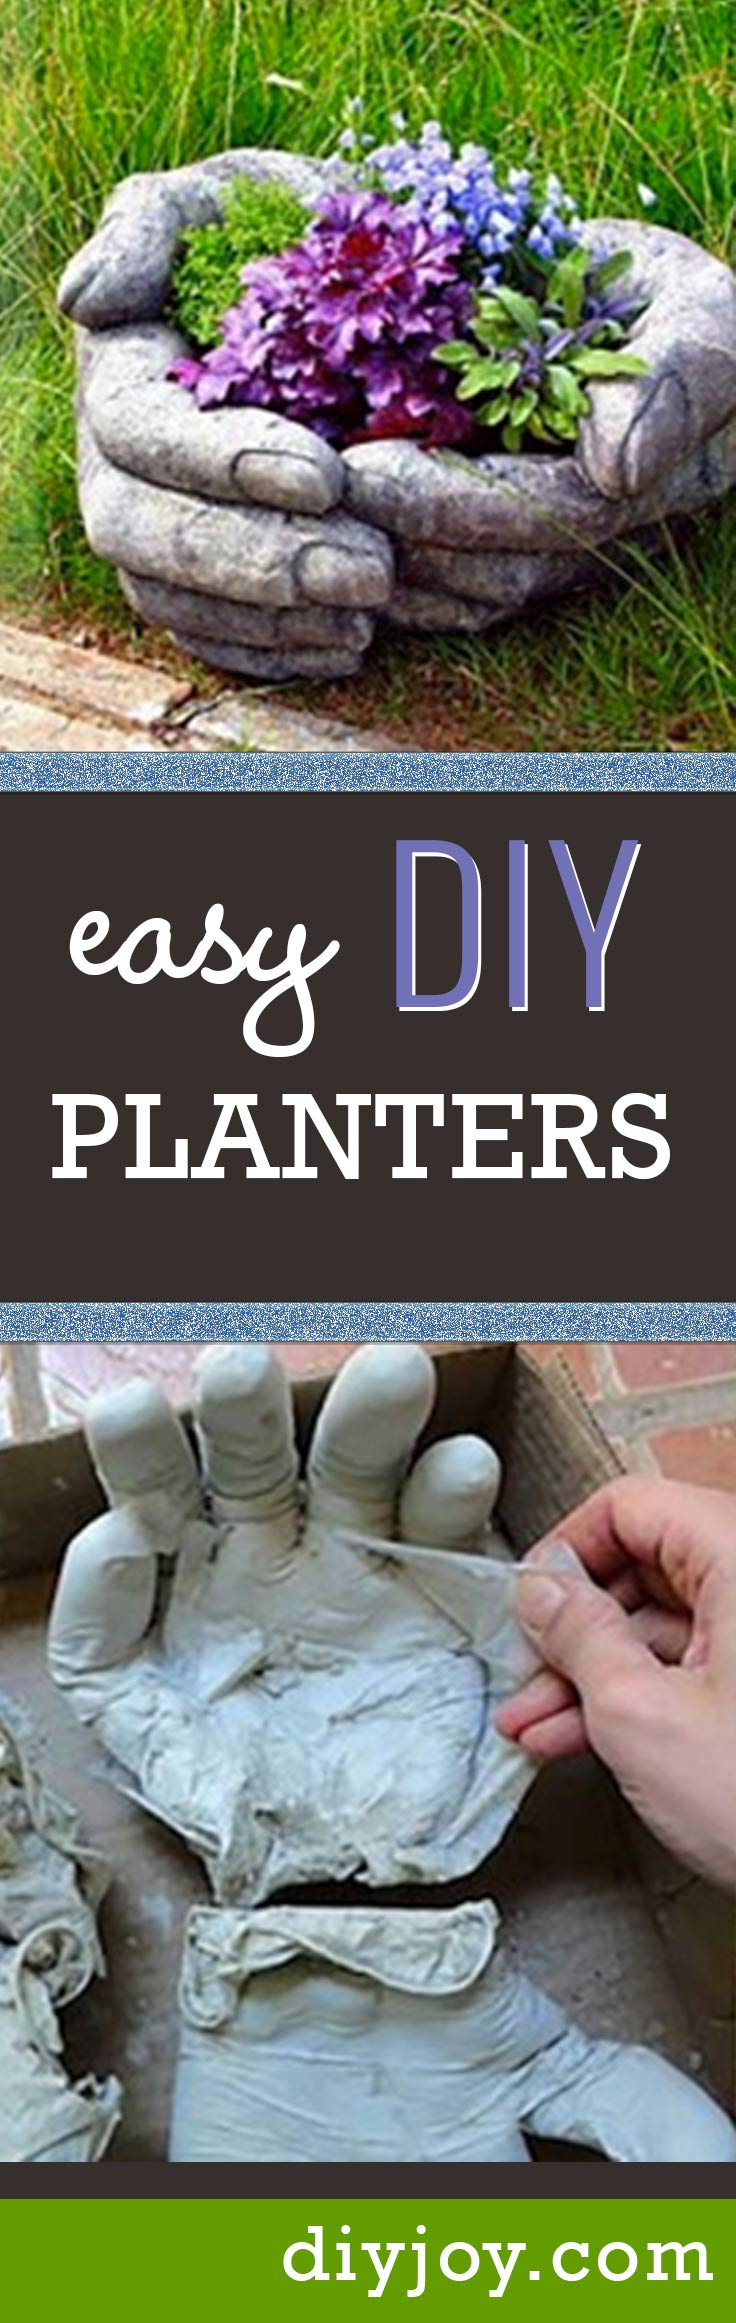 43 DIY concrete crafts - Concrete Pots In Hand Shade Are Super Creative Project- Cheap and creative projects and tutorials for countertops and ideas for floors, patio and porch decor, tables, planters, vases, frames, jewelry holder, home decor and DIY gifts. http://diyjoy.com/diy-concrete-crafts-projects-